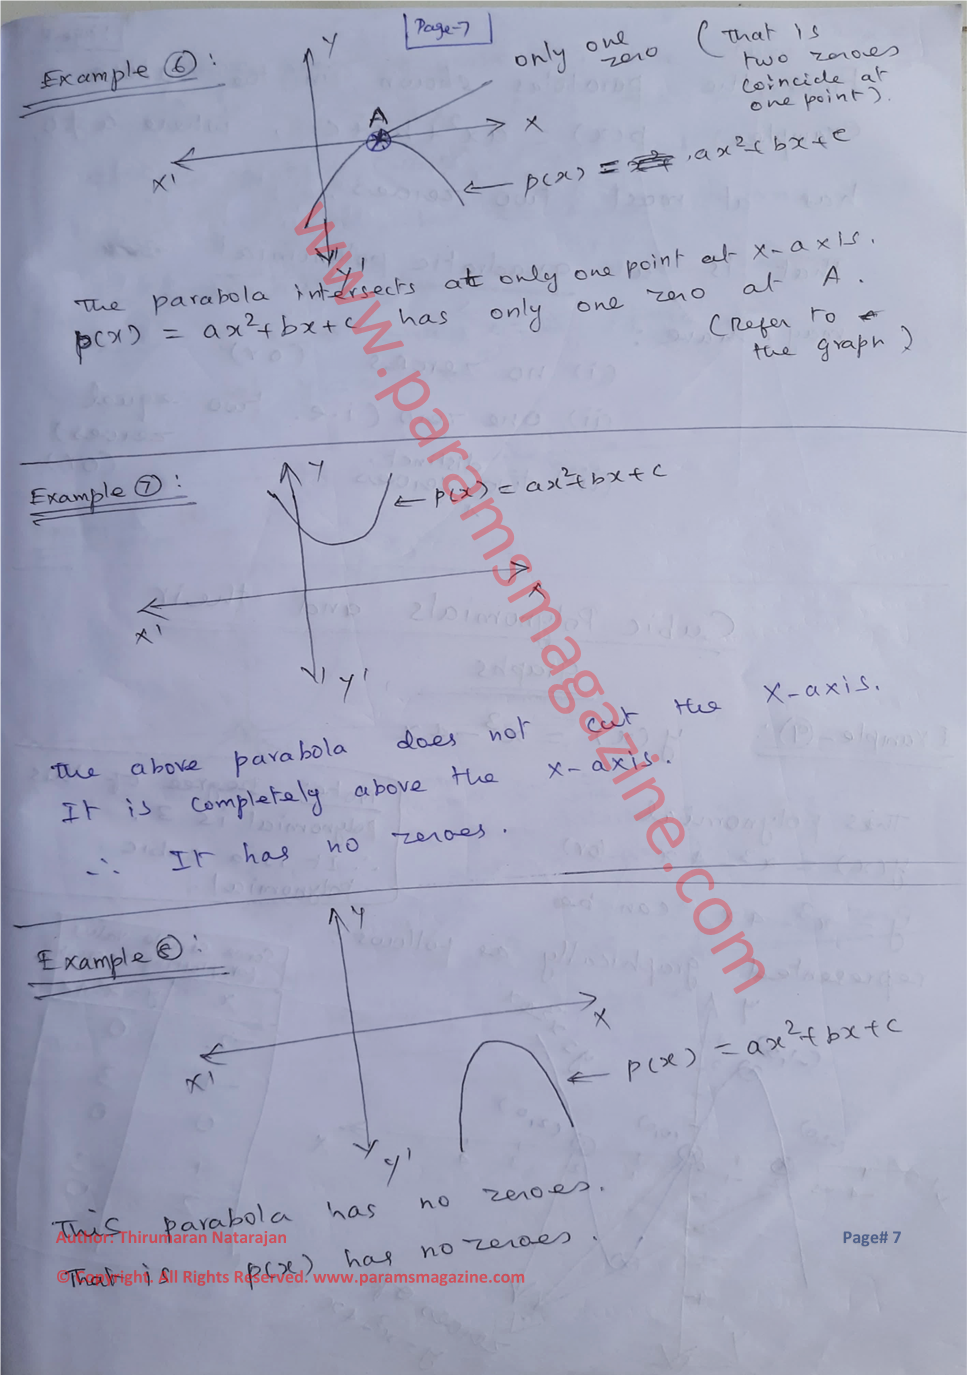 Class-10 - Polynomials - Notes - Page-7